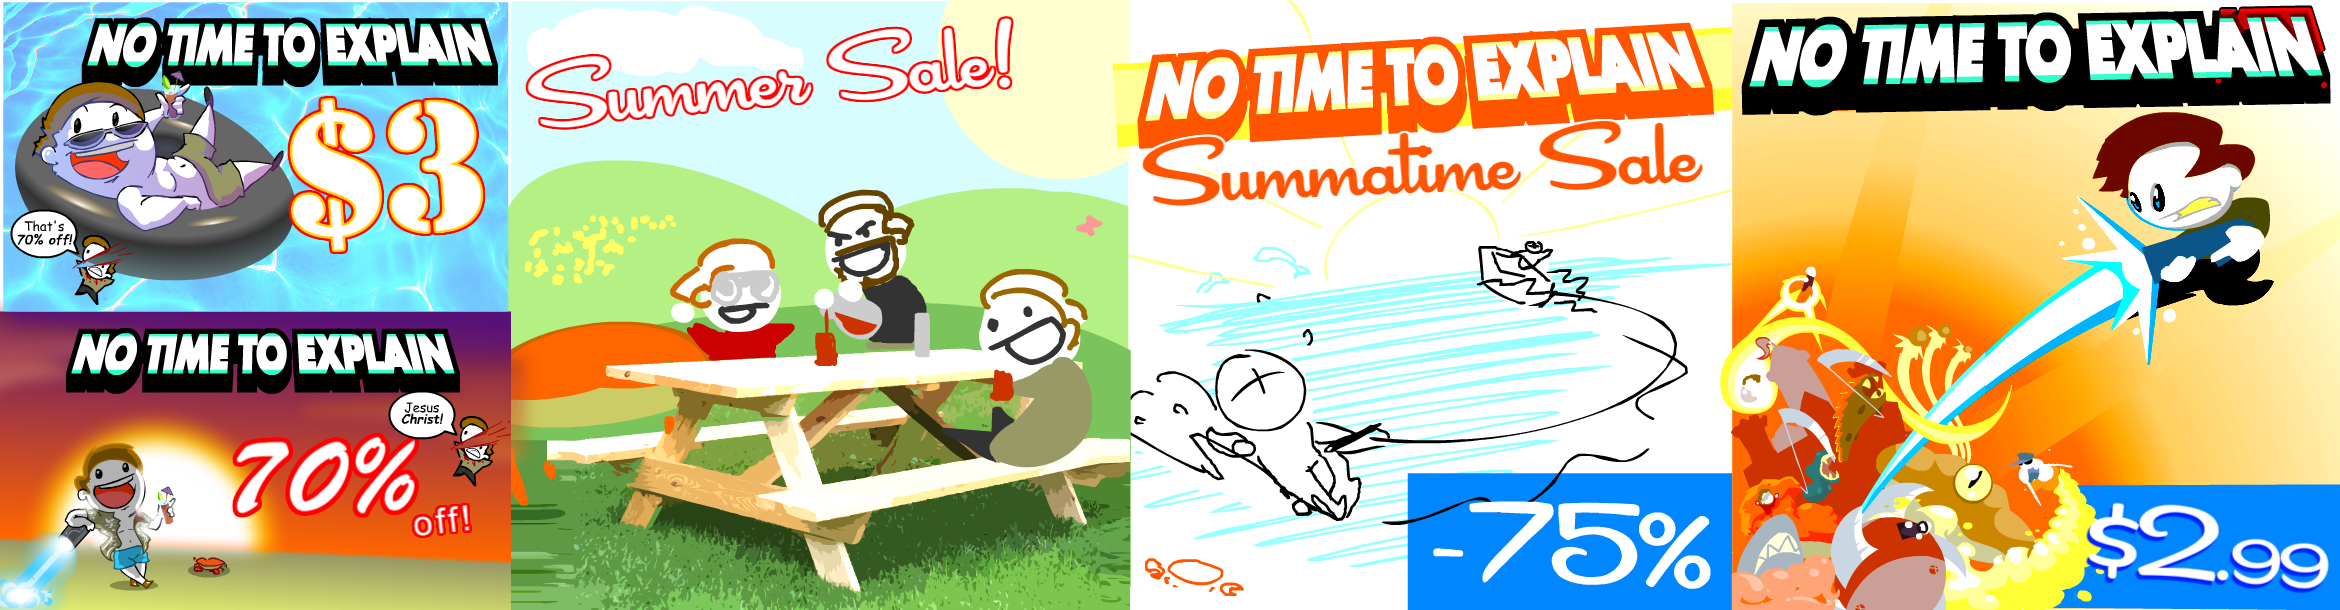 NTTE Summer Sale Art Graveyard